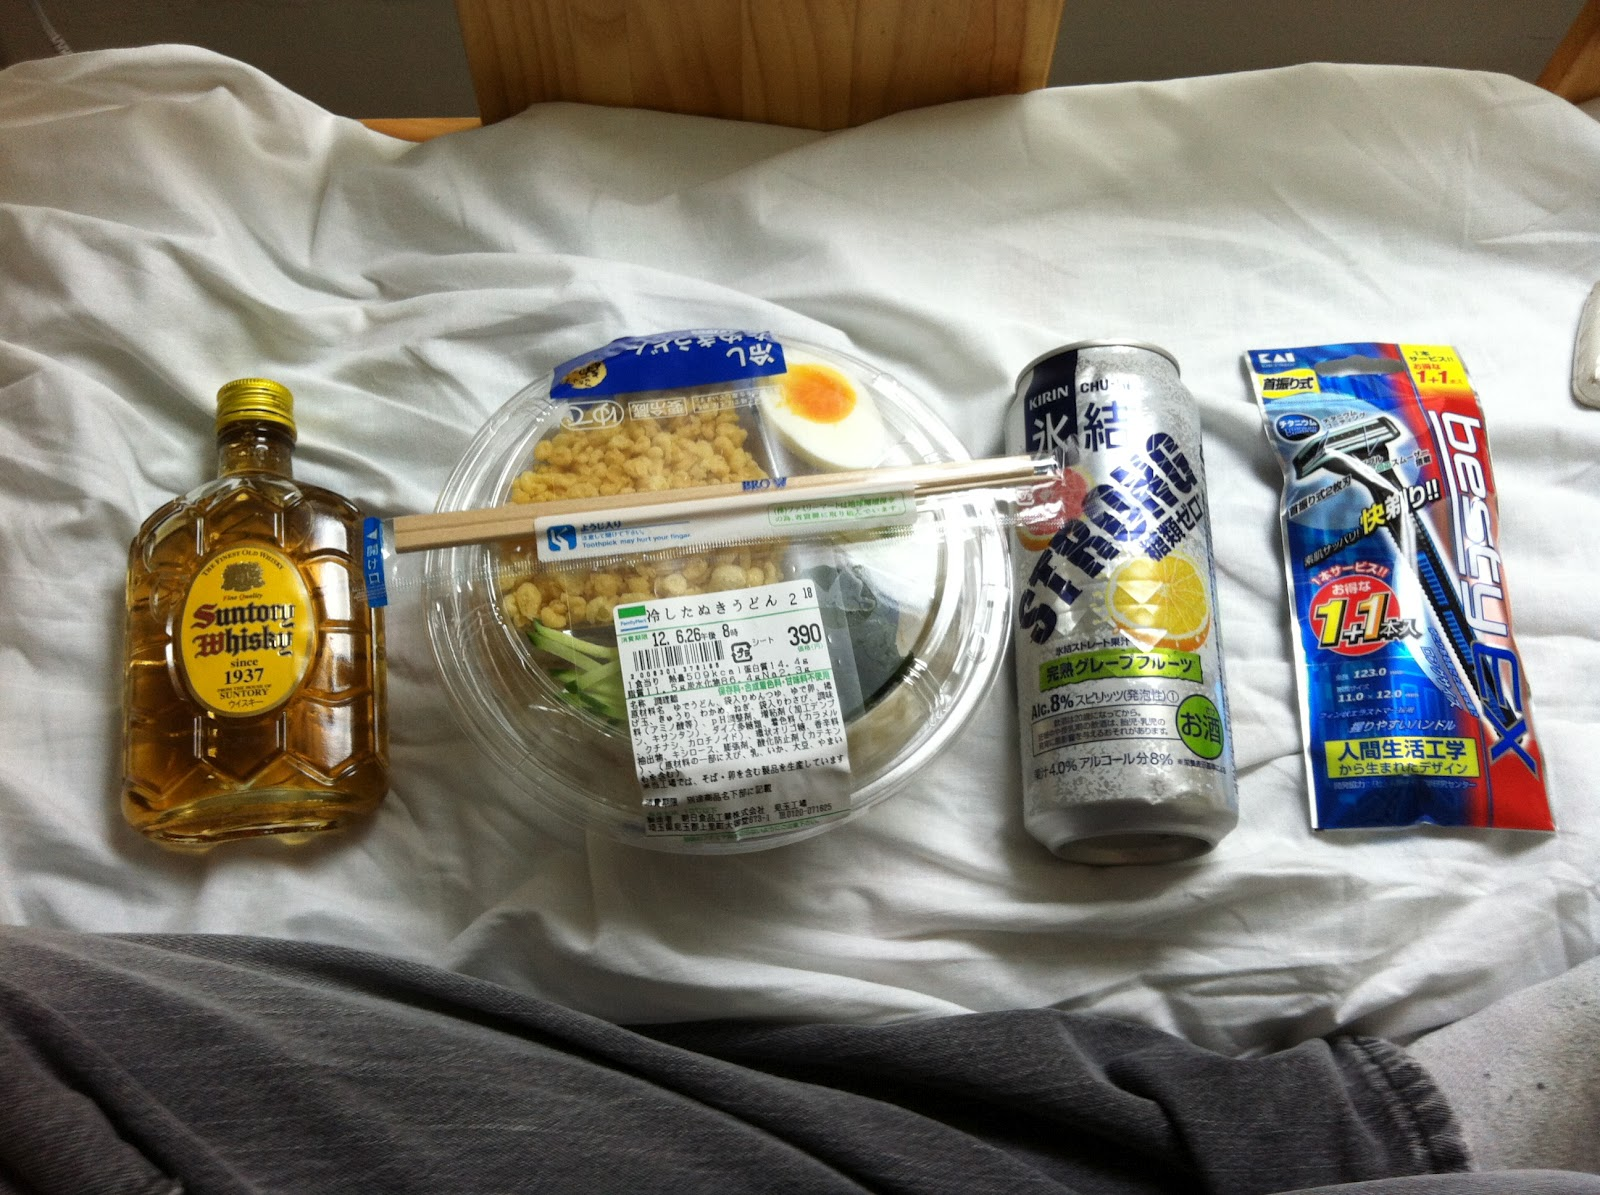 The Metropolitan Lounge: Convenient Stores in Japan and ...